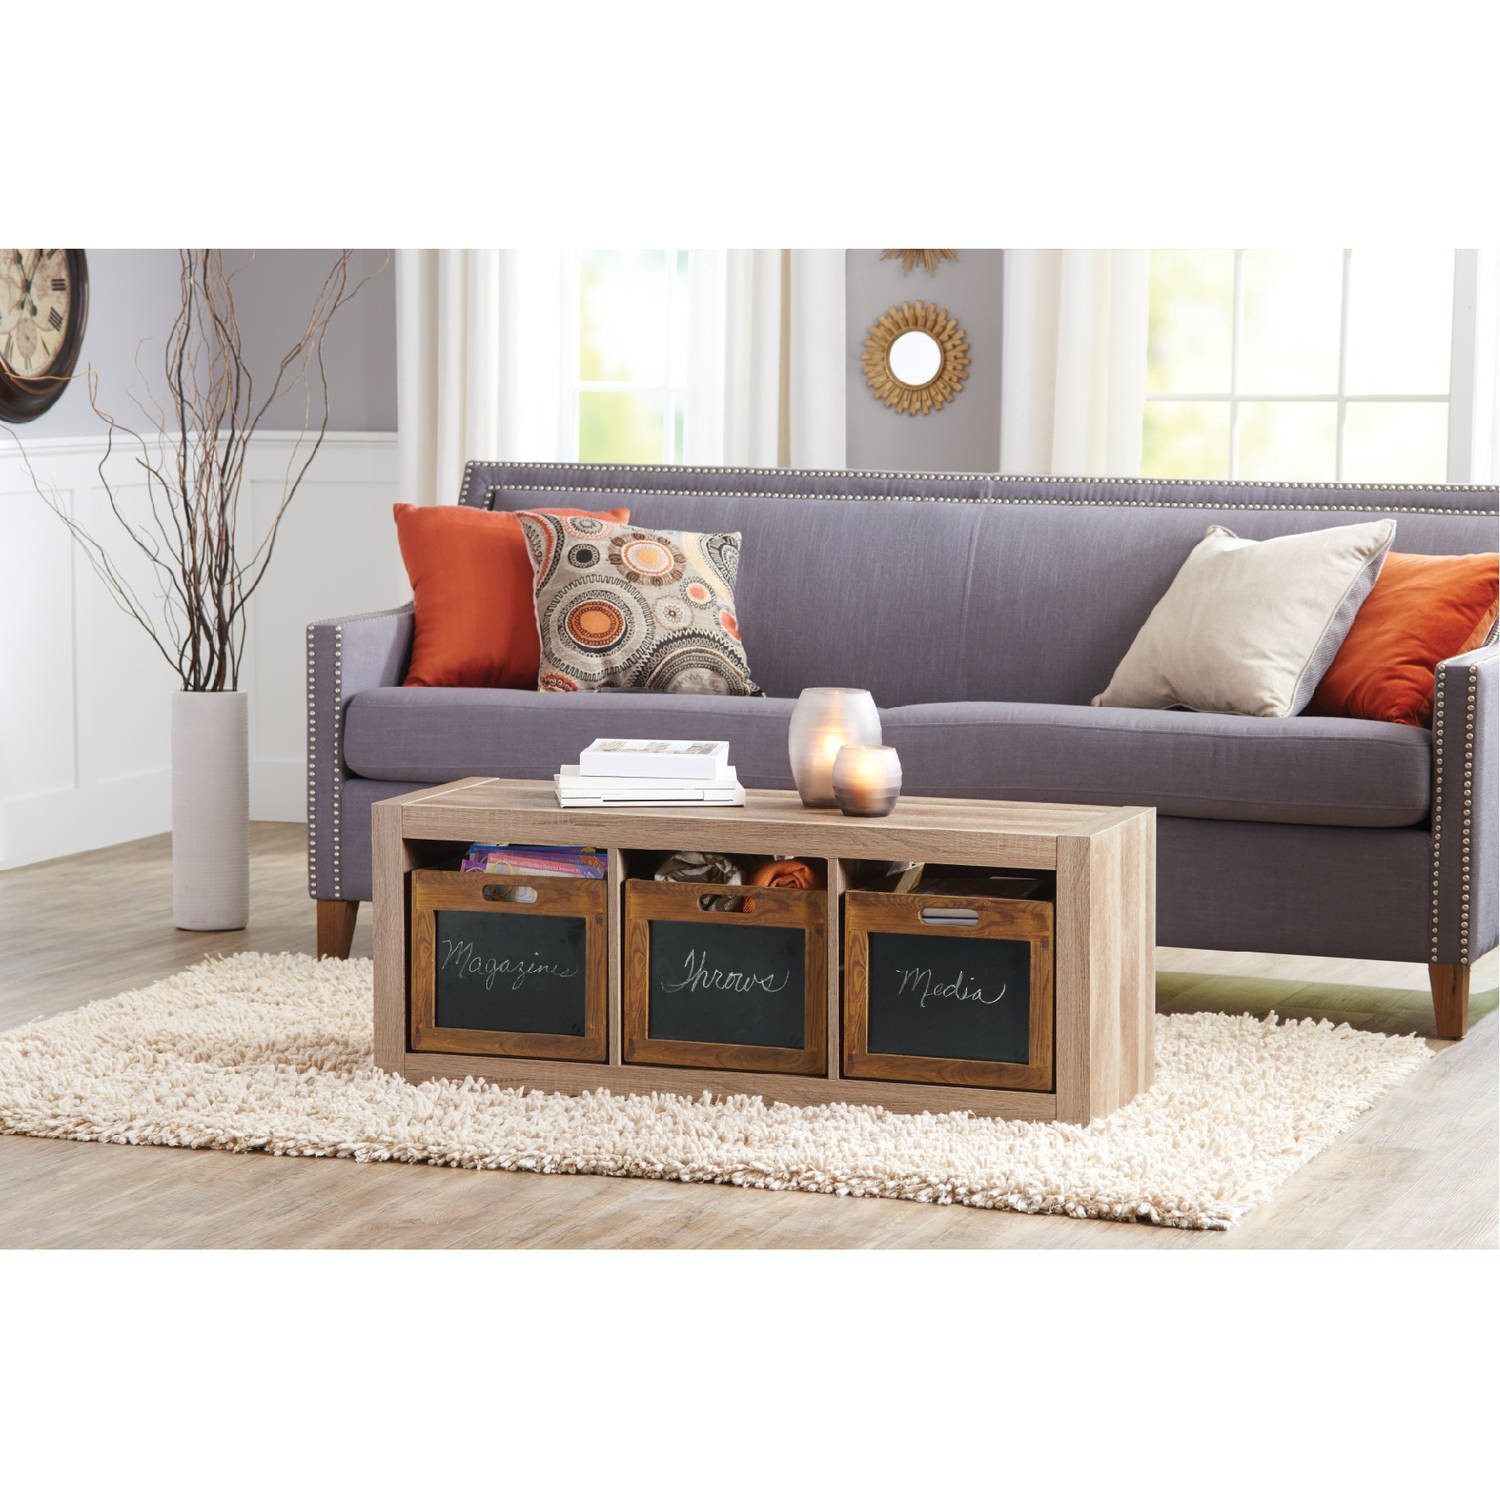 Delicieux Better Homes And Gardens Wood Decor Crate